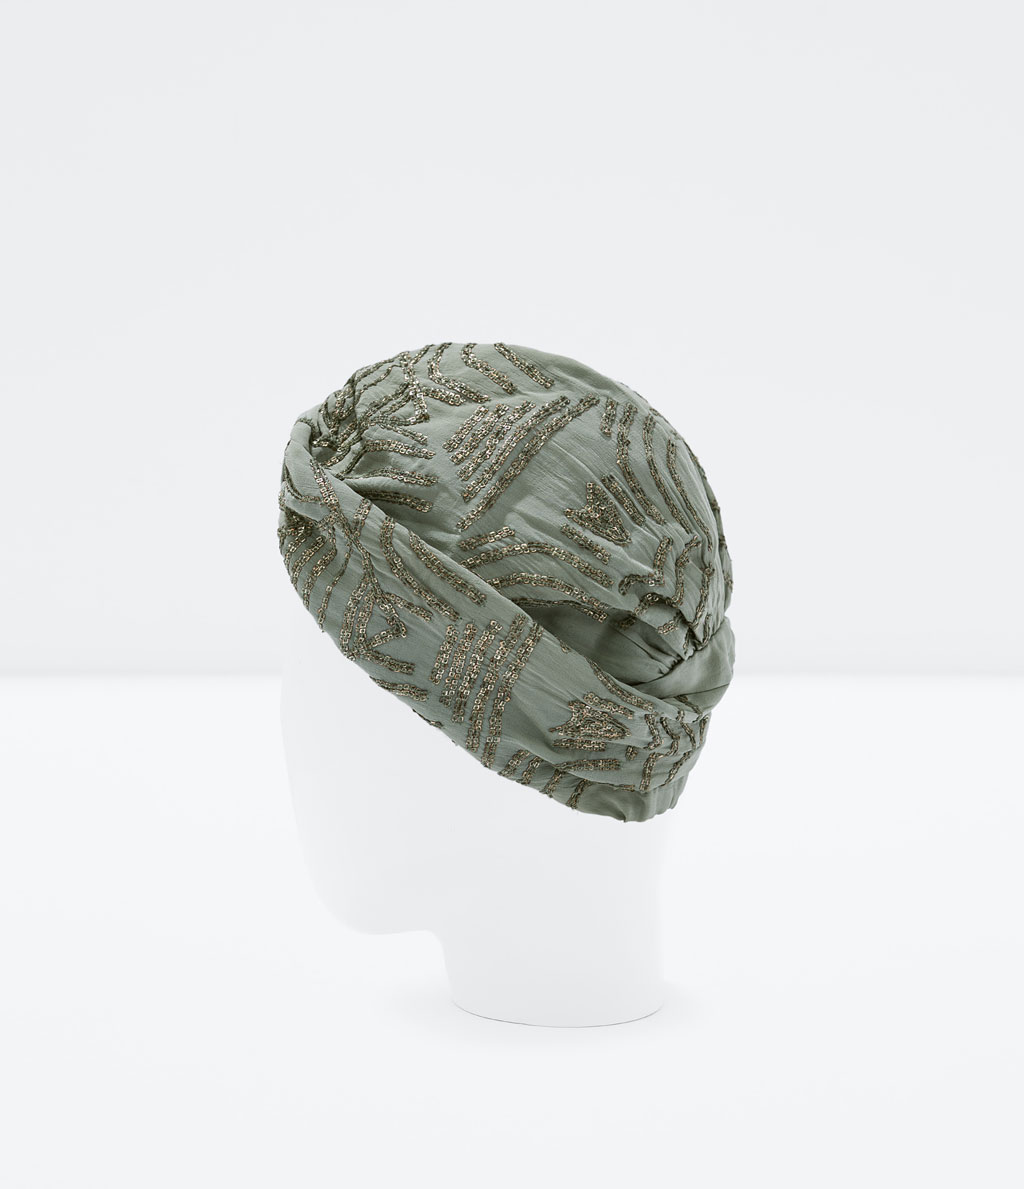 http://www.zara.com/uk/en/woman/accessories/accessories/special-edition-beaded-turban-c271008p2178559.html